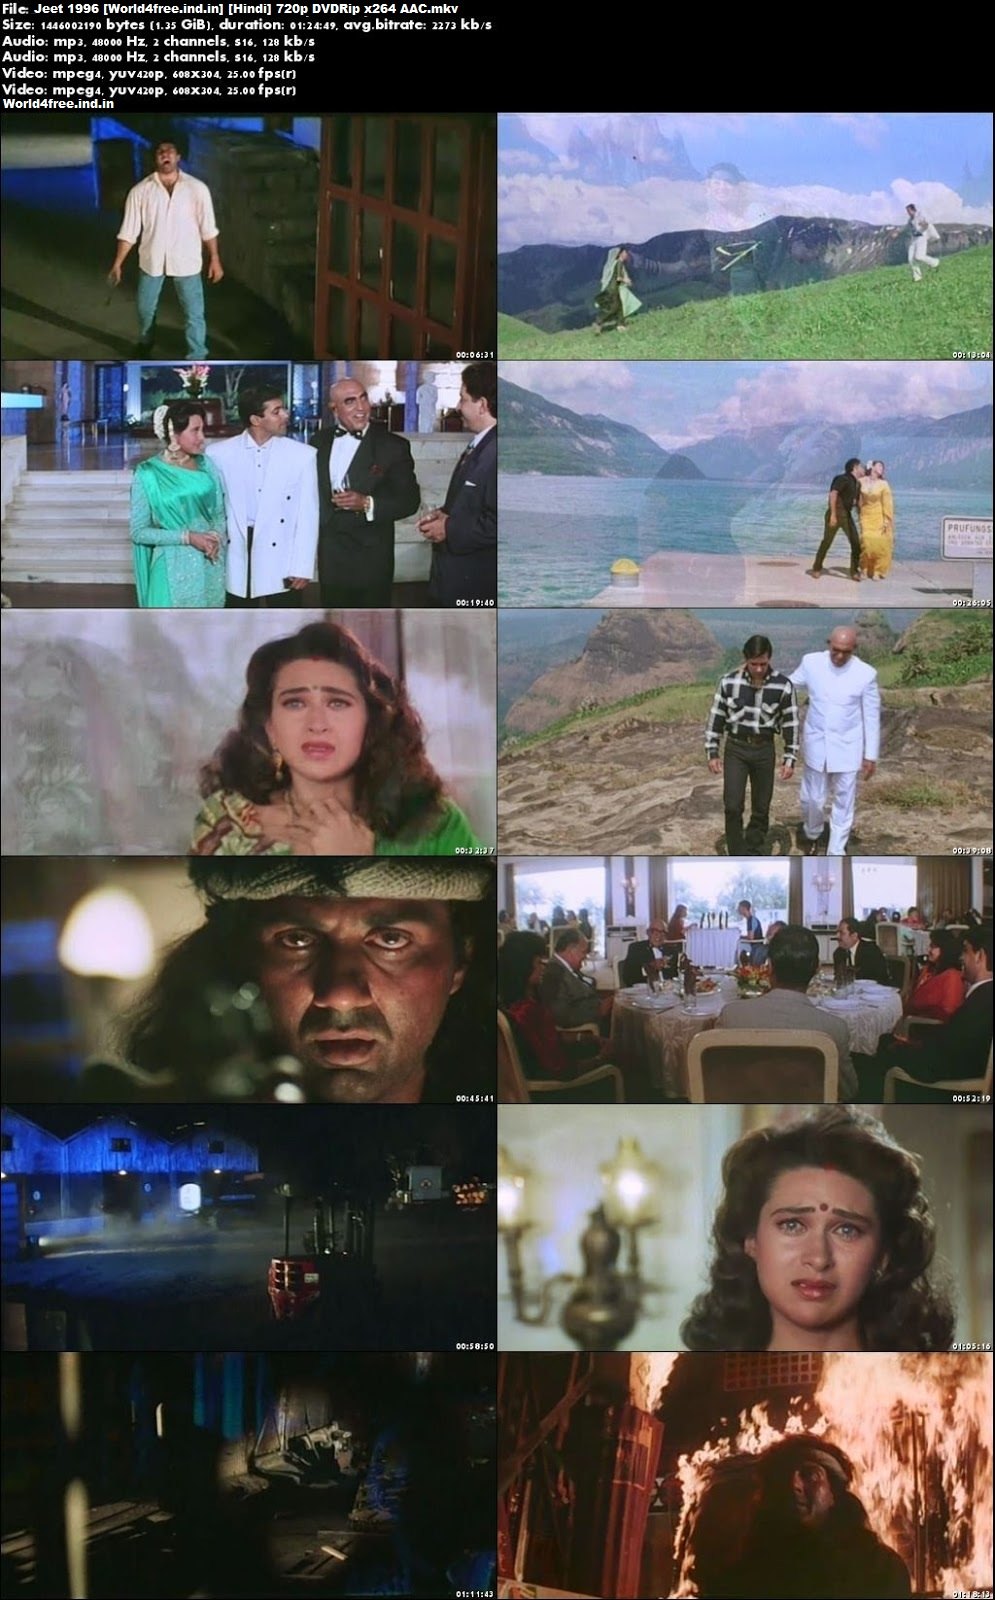 Jeet 1996 world4free.ind.in Full DVDRip 720p Hindi Movie Download